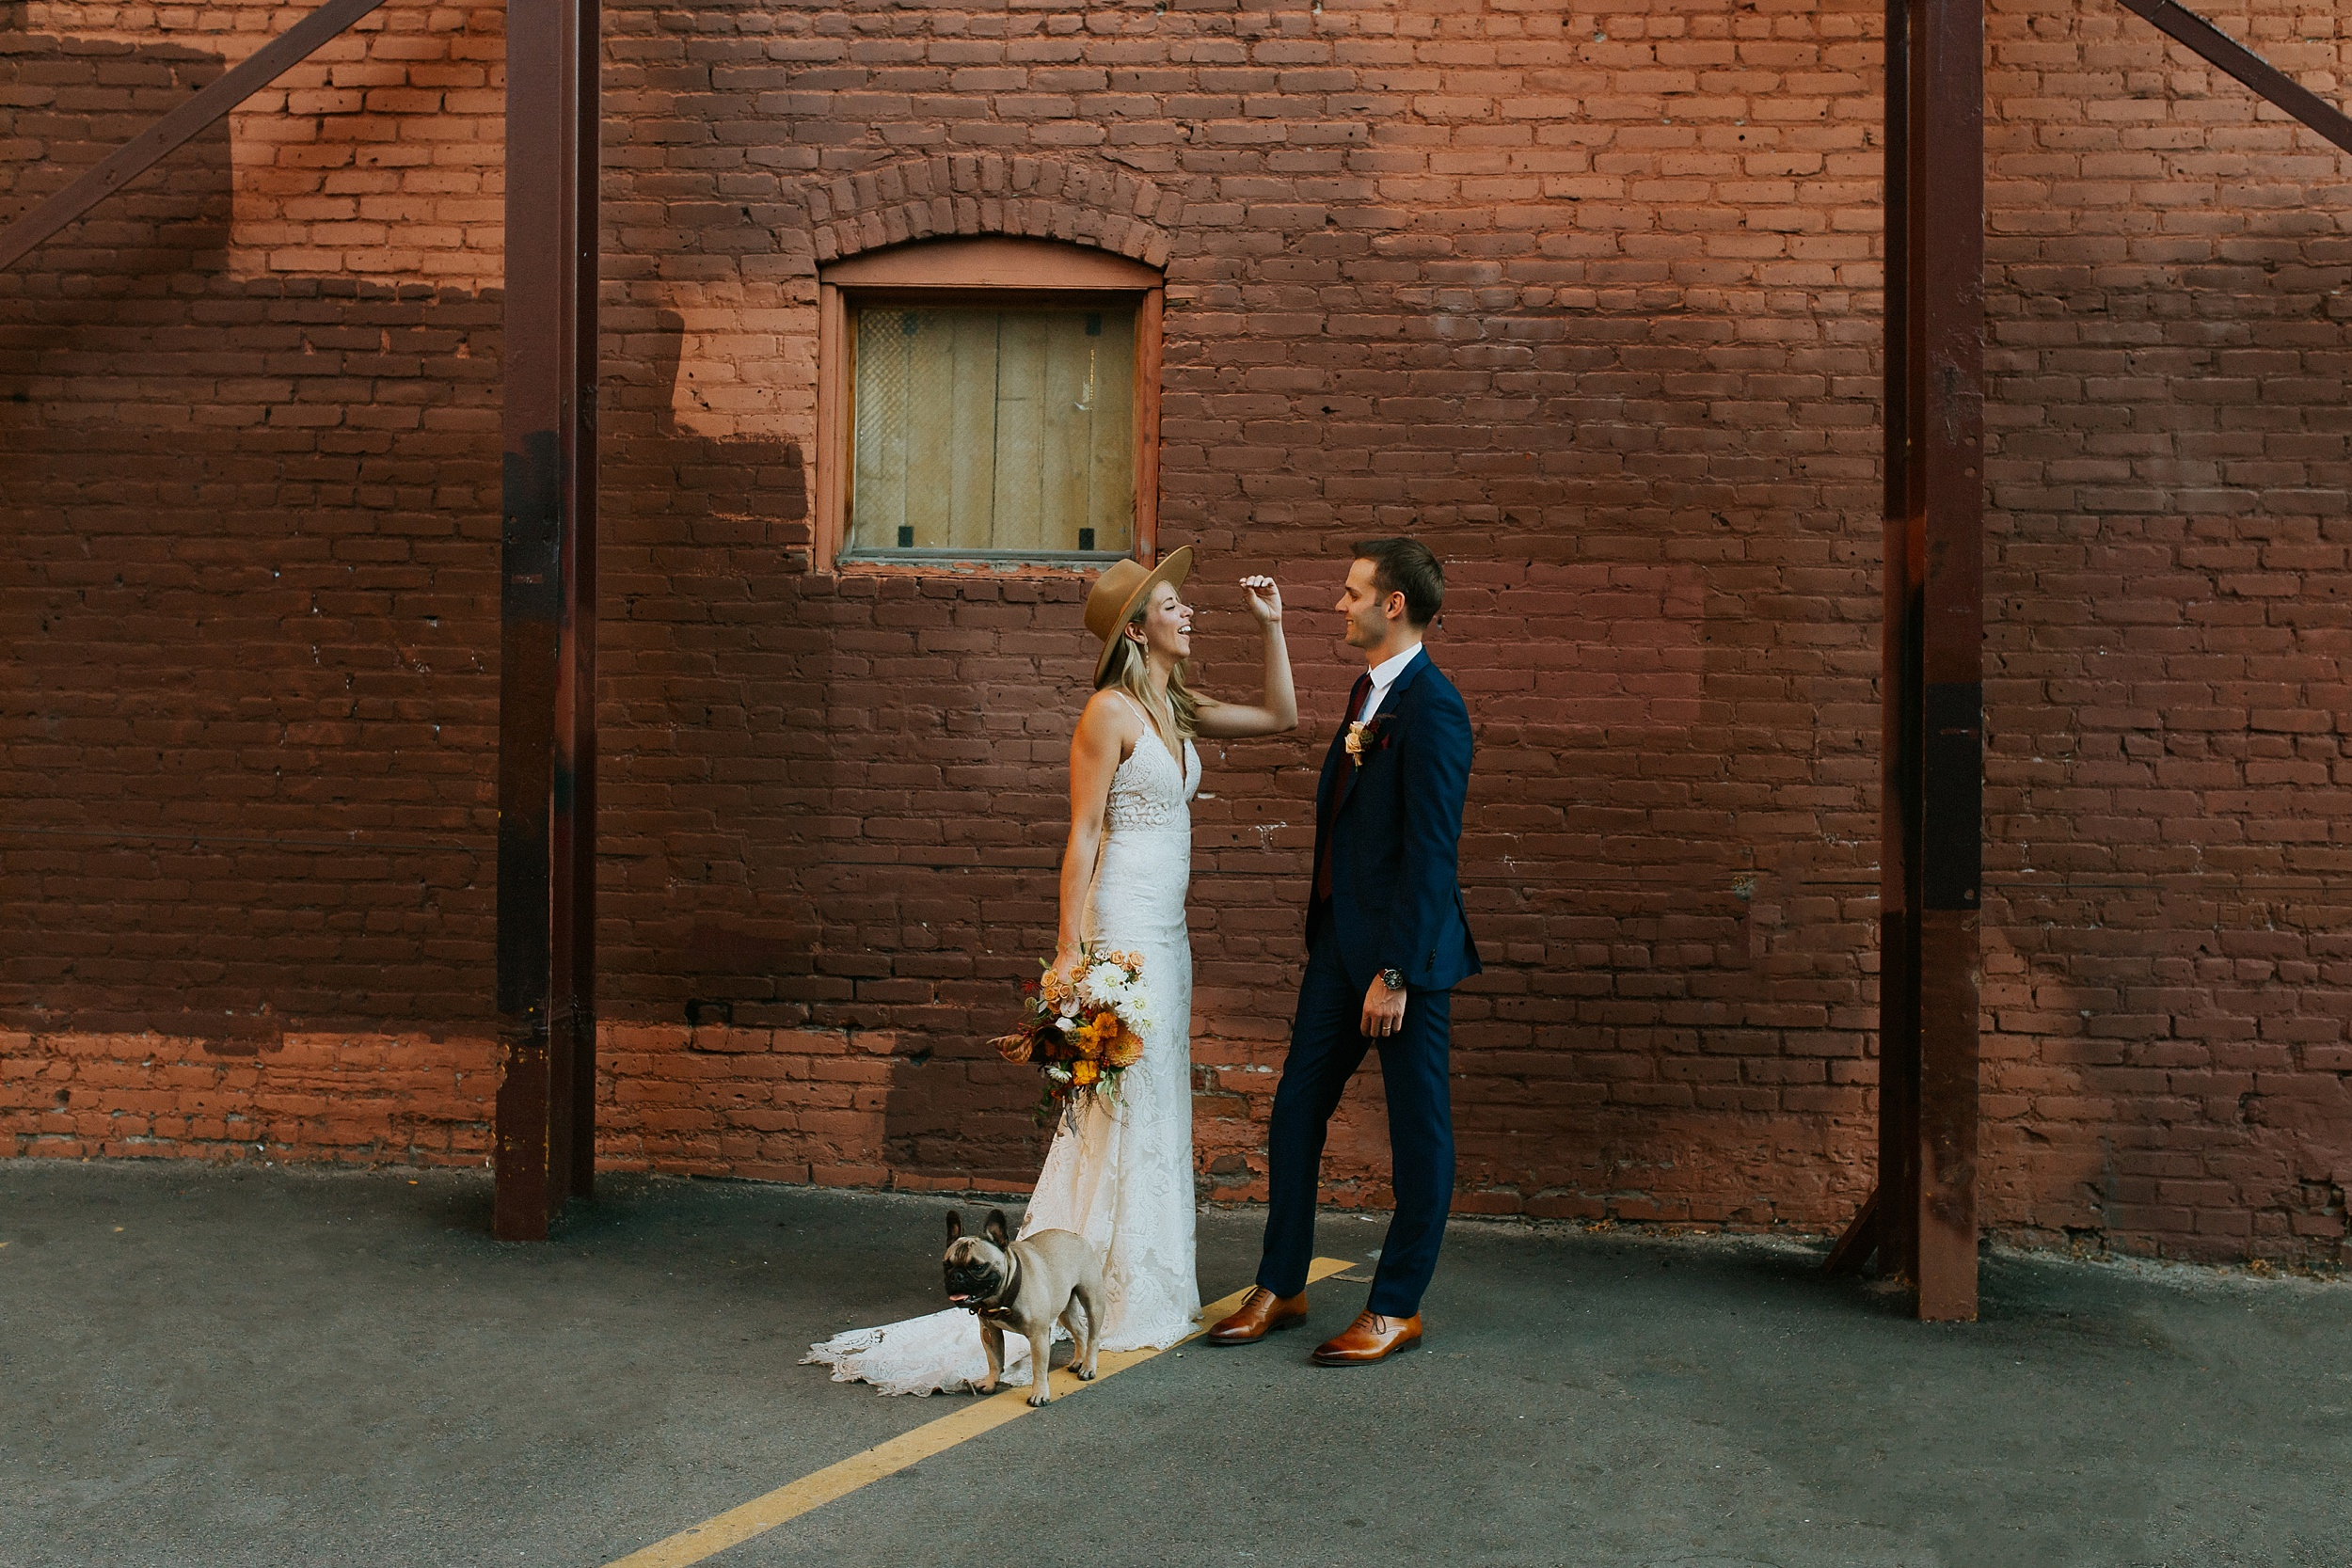 Bride and groom bring their frenchie dog for elopement in downtown denver!